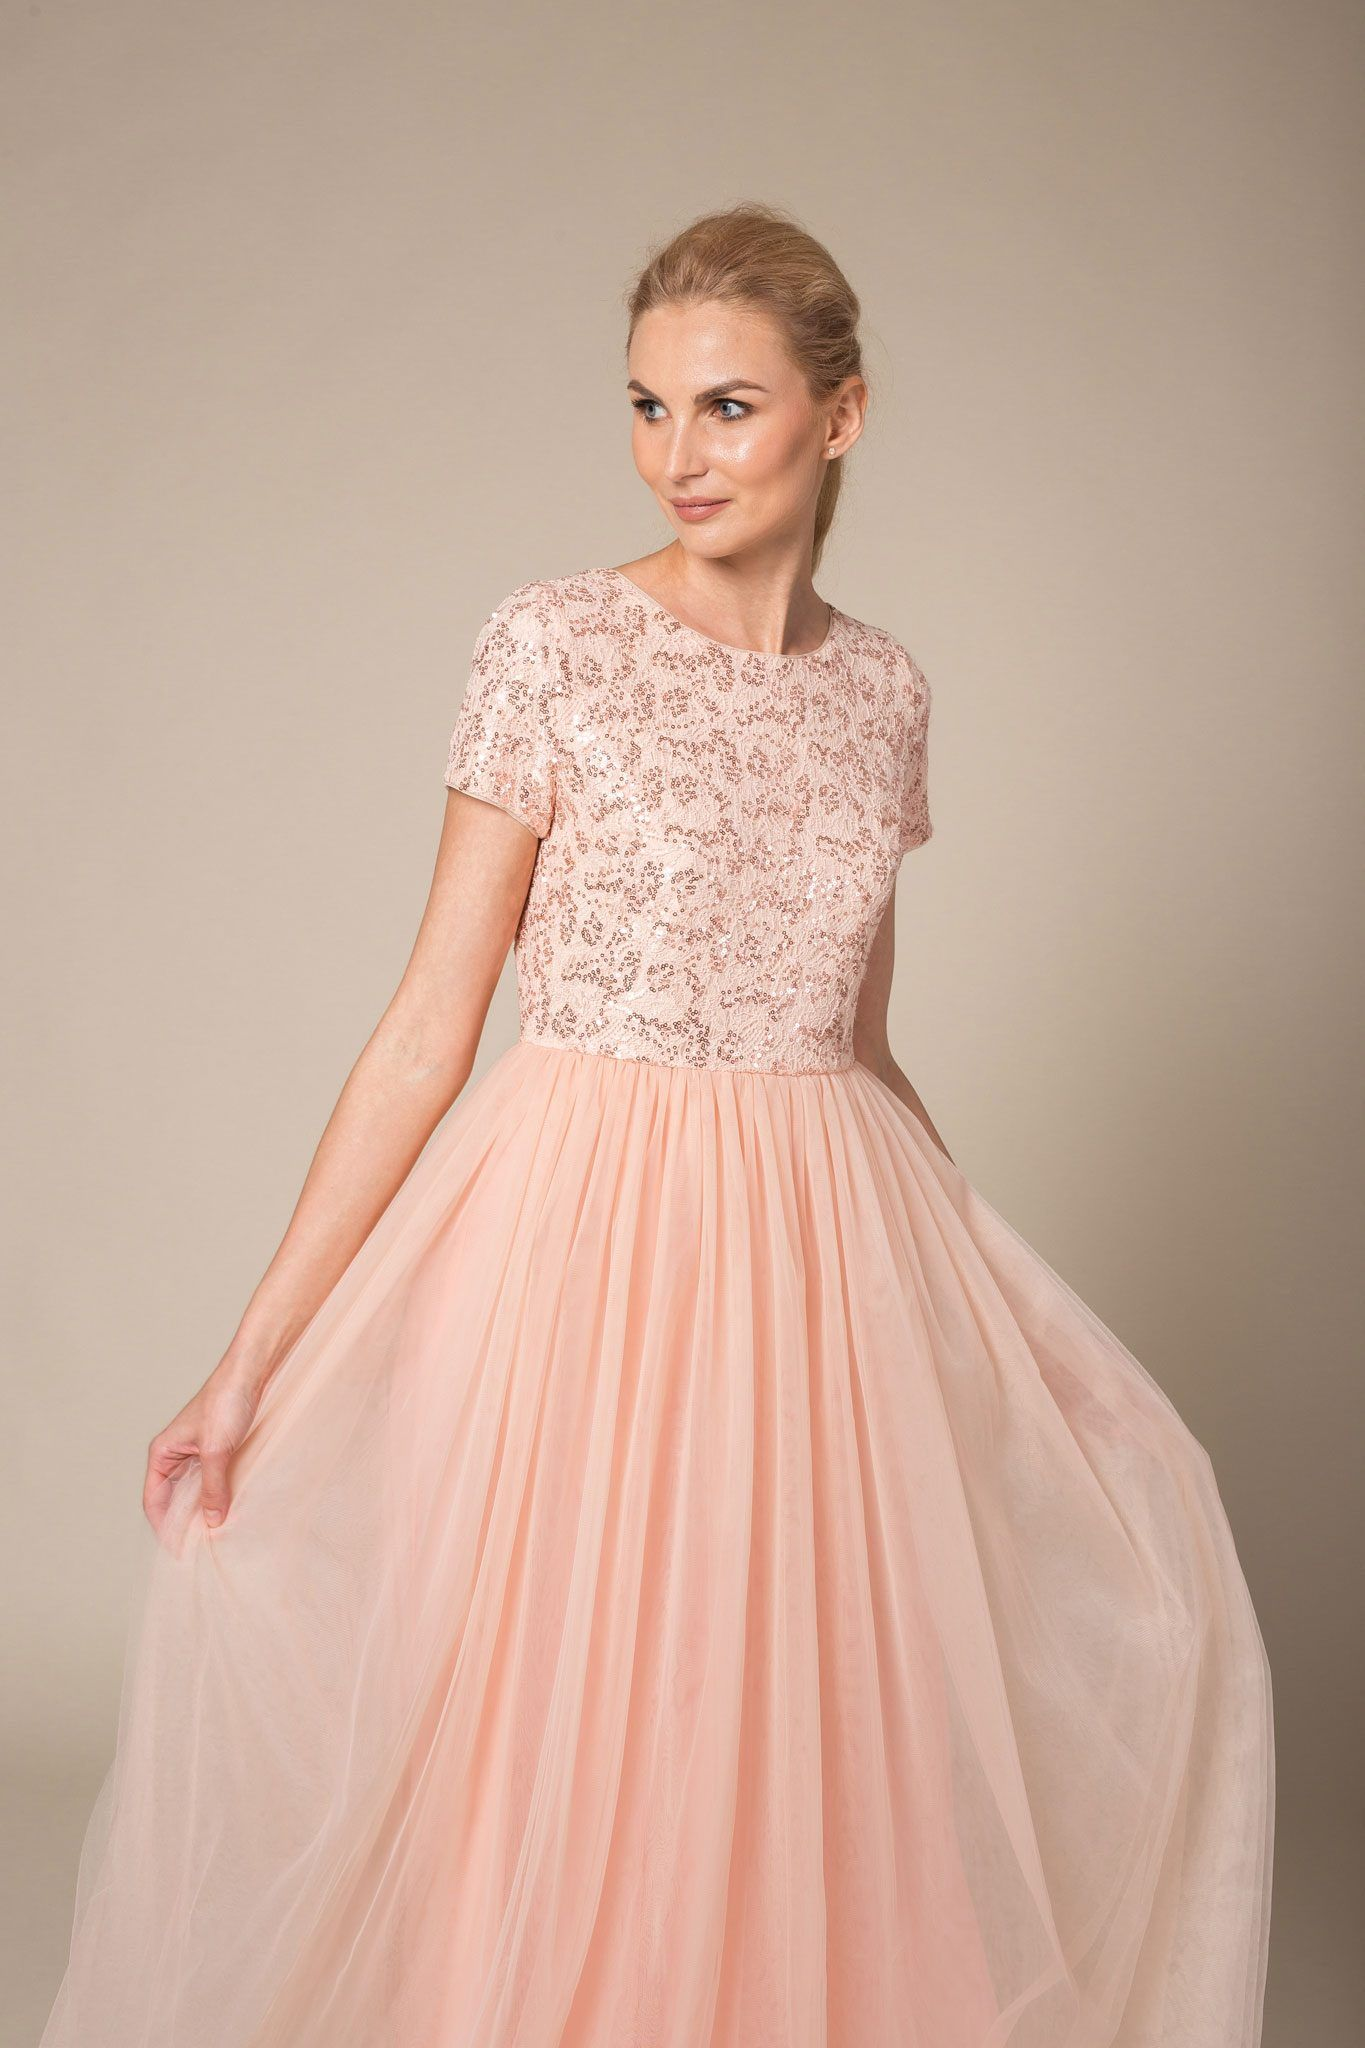 Peach maxi dress with tulle skirt